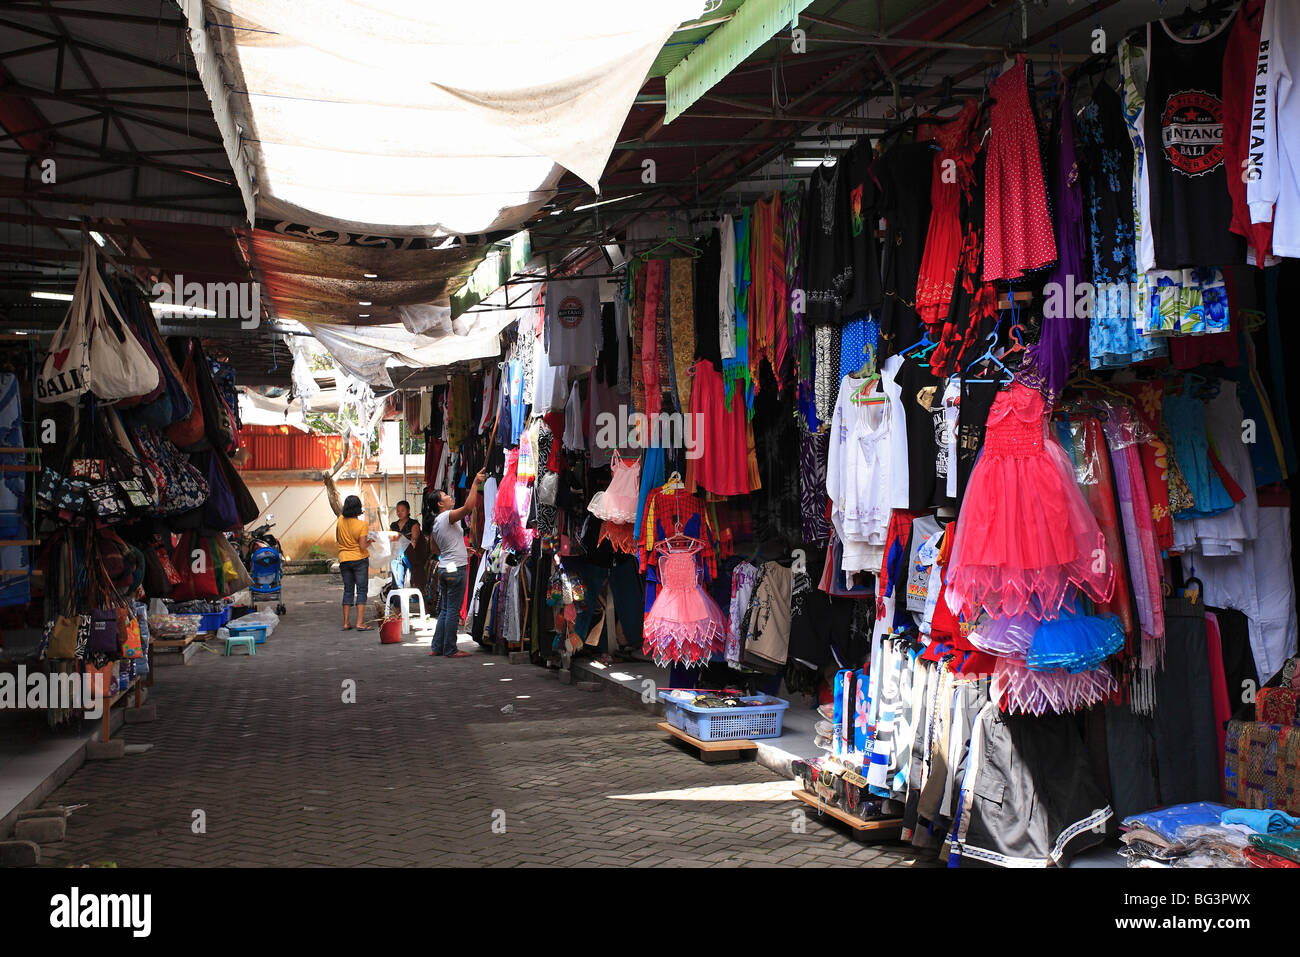 market stalls selling clothing, bags and homewares in a gang